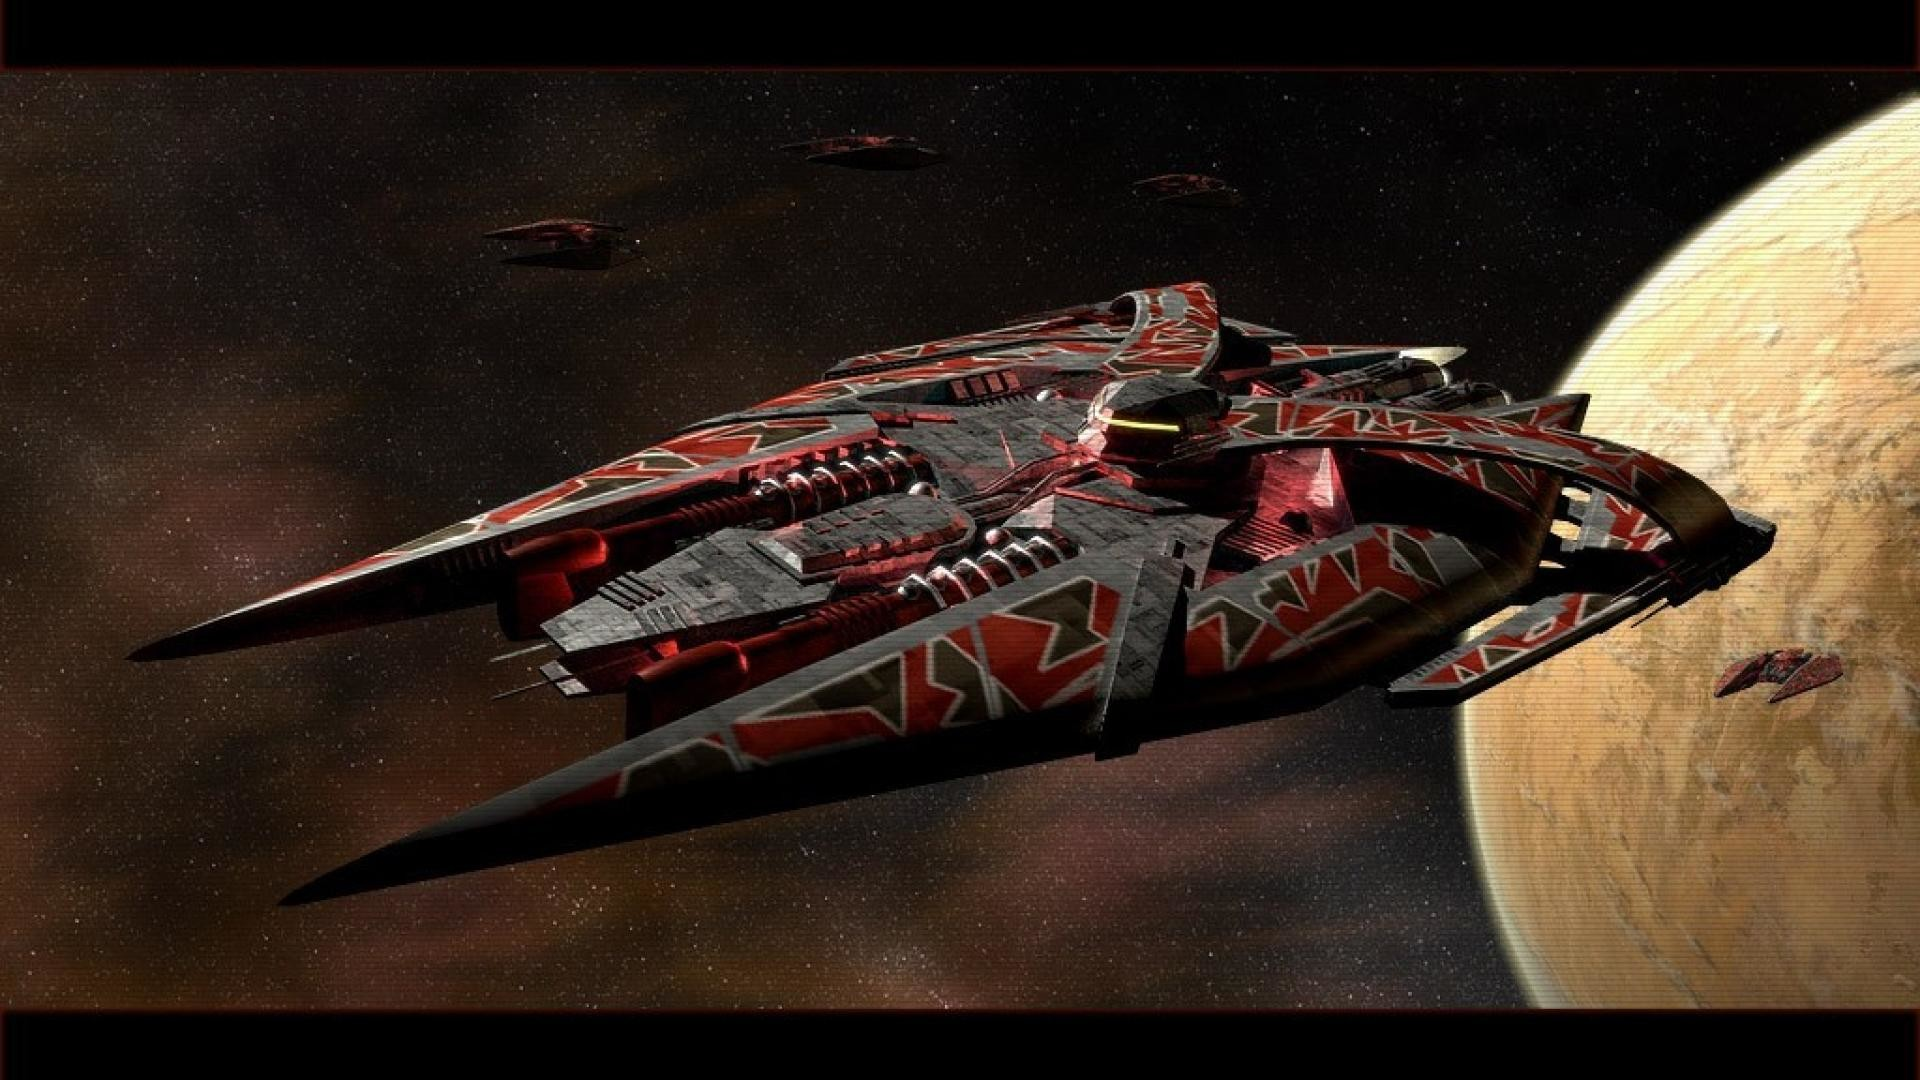 Babylon 5: A Call to Arms HD Wallpaper | Background Image